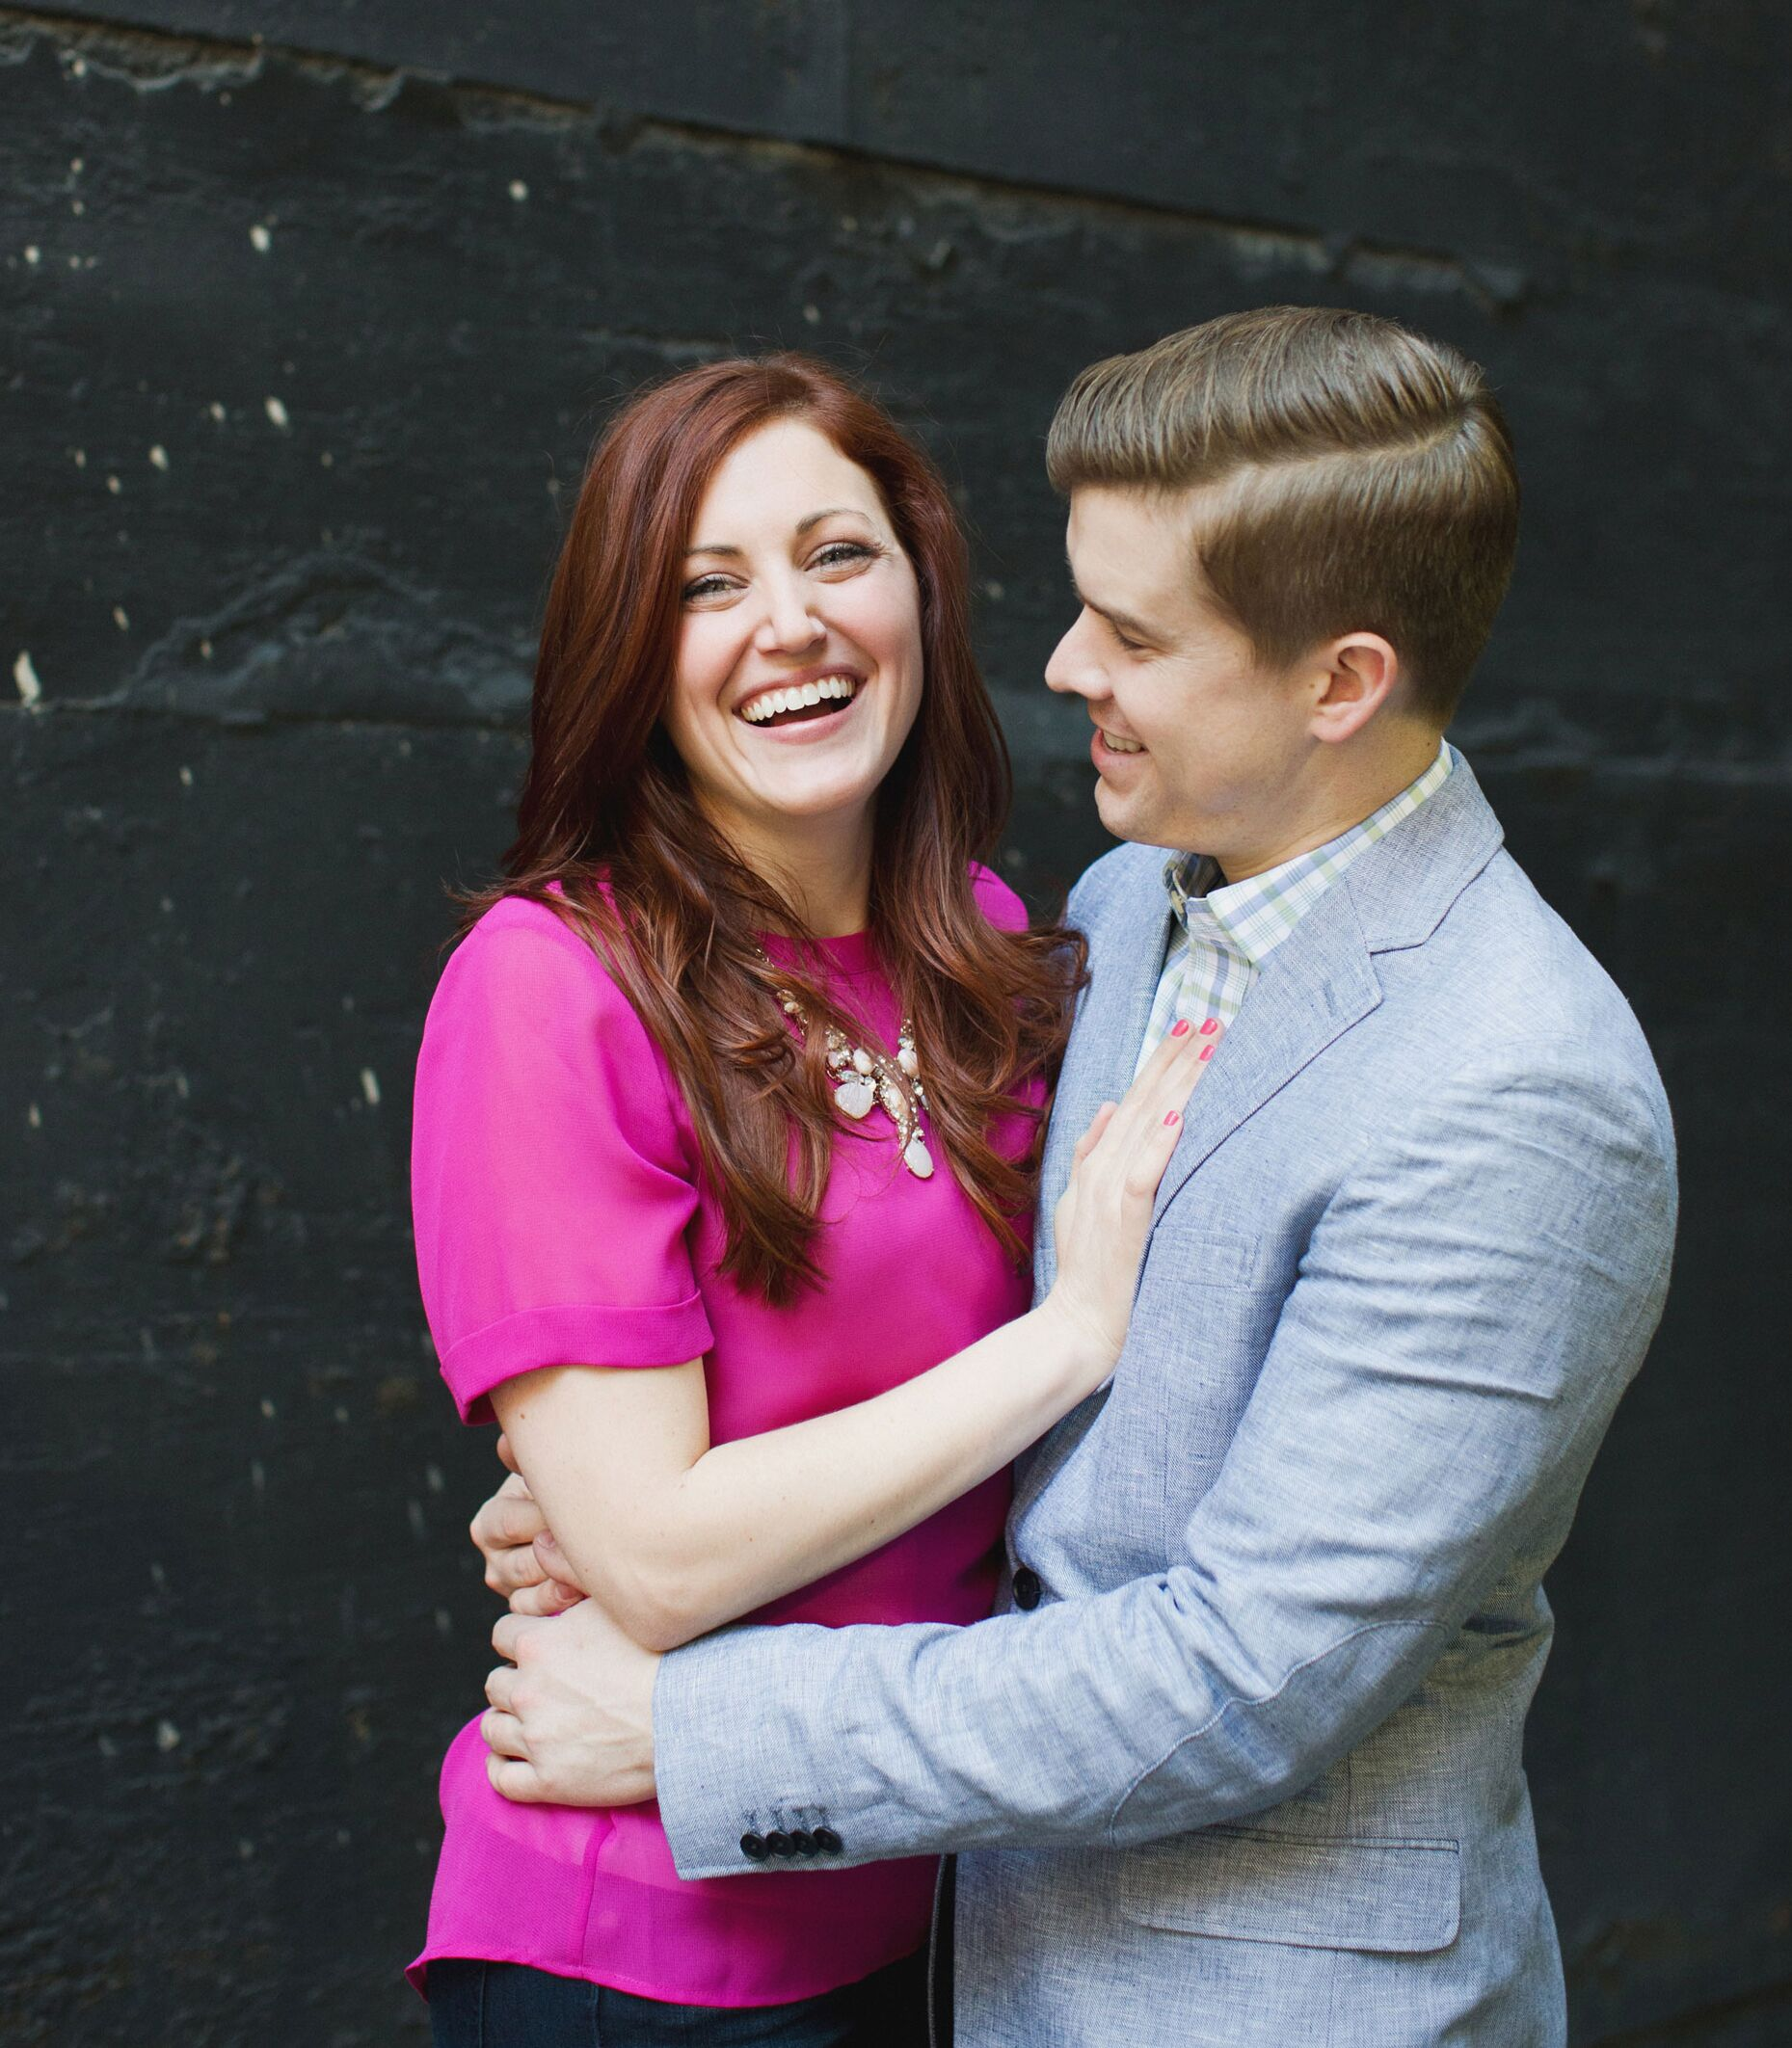 e06fc8e7ae Everything You Need to Know About Taking Engagement Photos